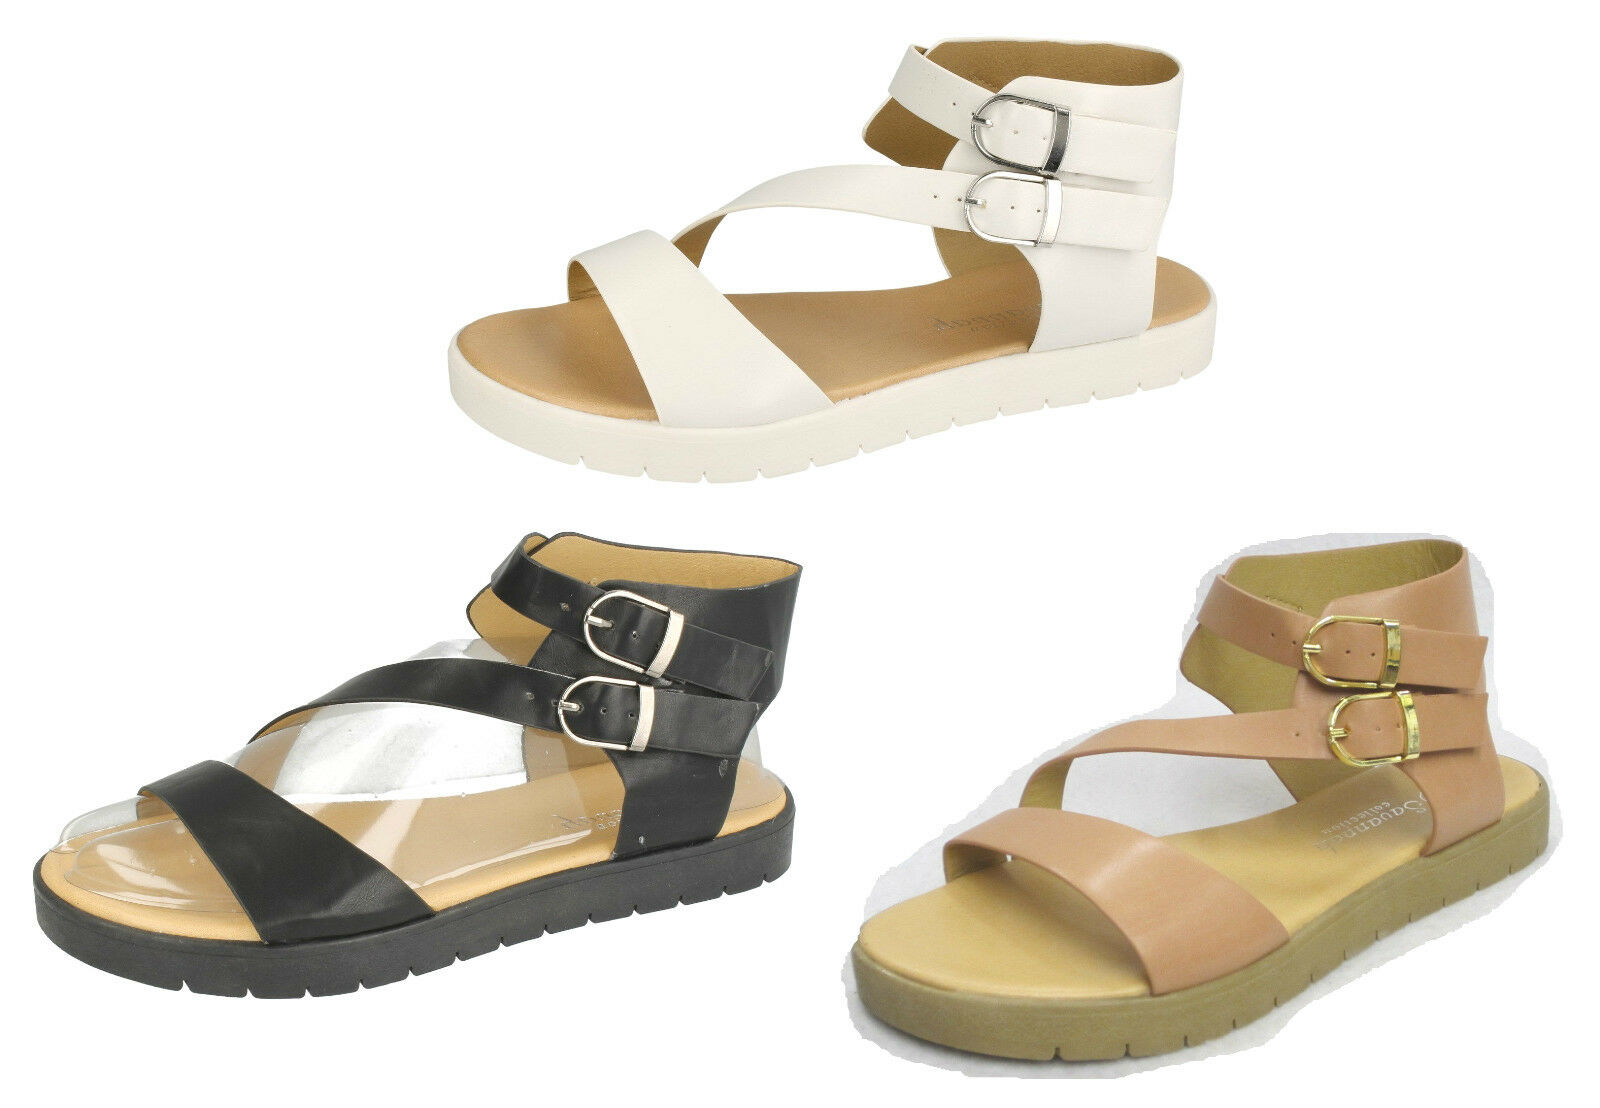 Ladies F0874S Gladiator Style Strappy Sandal Savannah in 3 Colours by Savannah Sandal 0575be